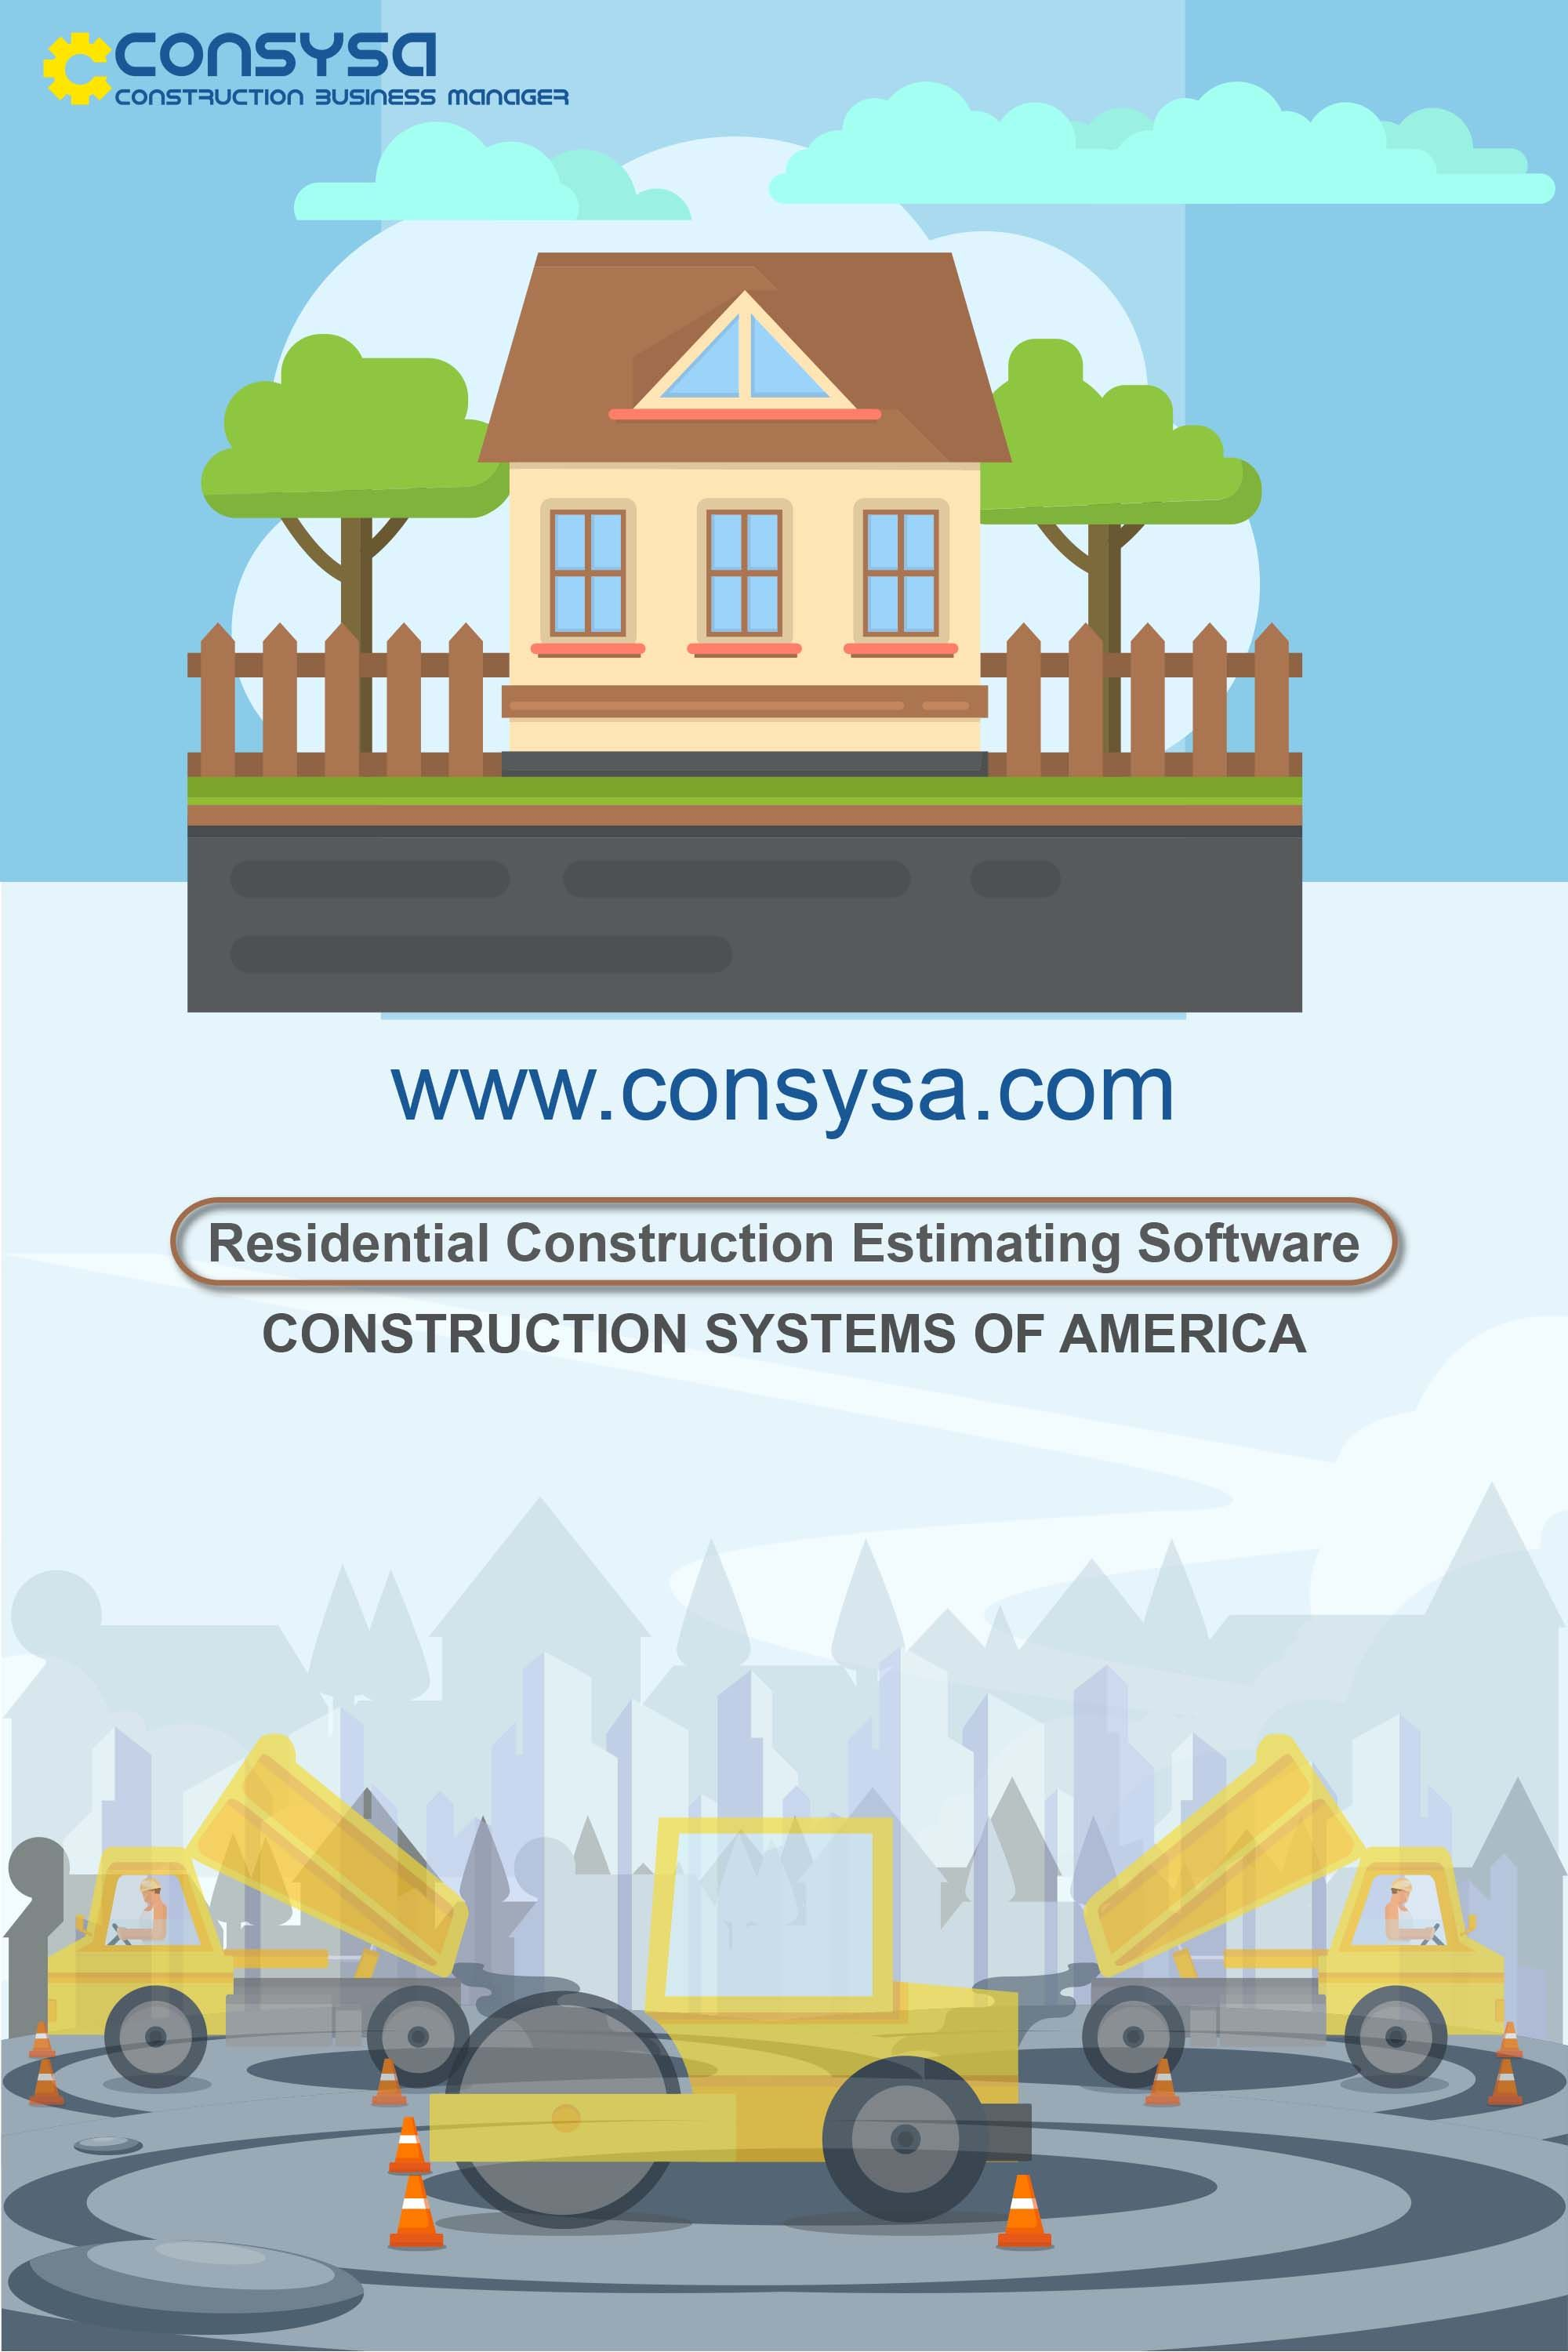 Residential Construction Estimating Software Construction Estimating Software Residential Construction Construction